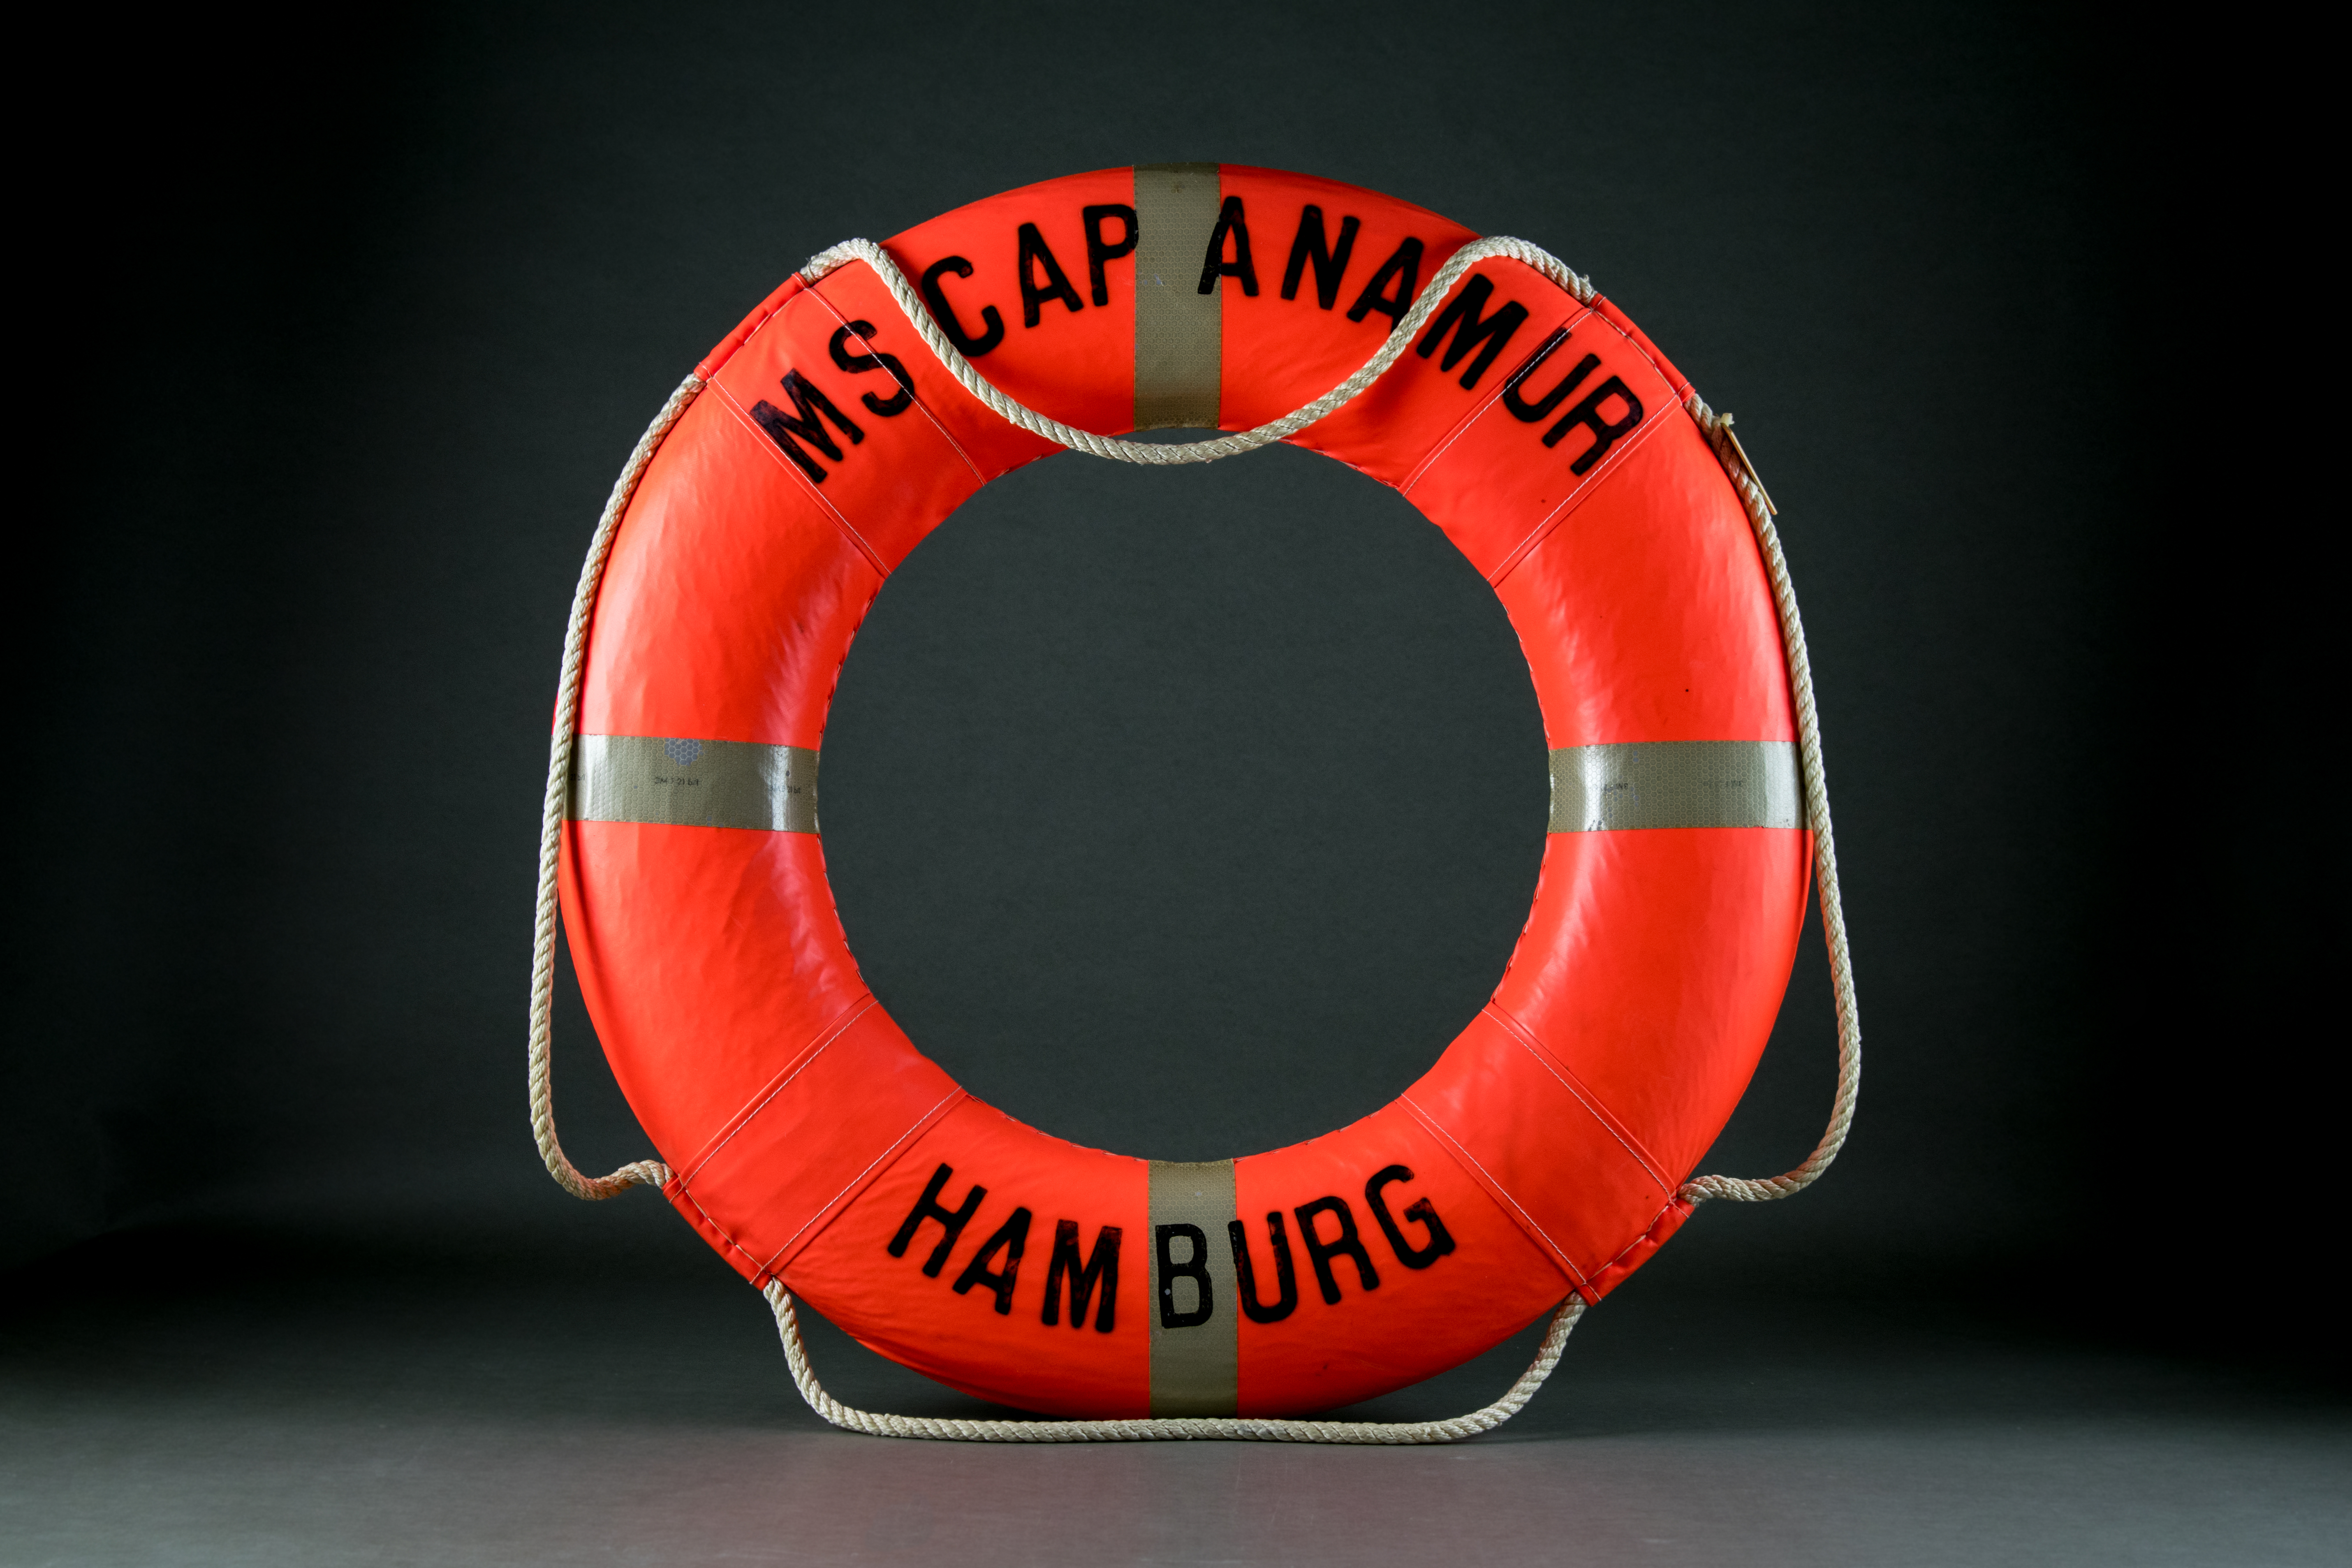 Life buoy from the hospital ship Cap Anamur I, with which almost 10,000 boat people were rescued from the South China Sea, c. 1980 © Thomas Huân Nguyễn, DOMiD-Archiv, Köln, E 1466,0003